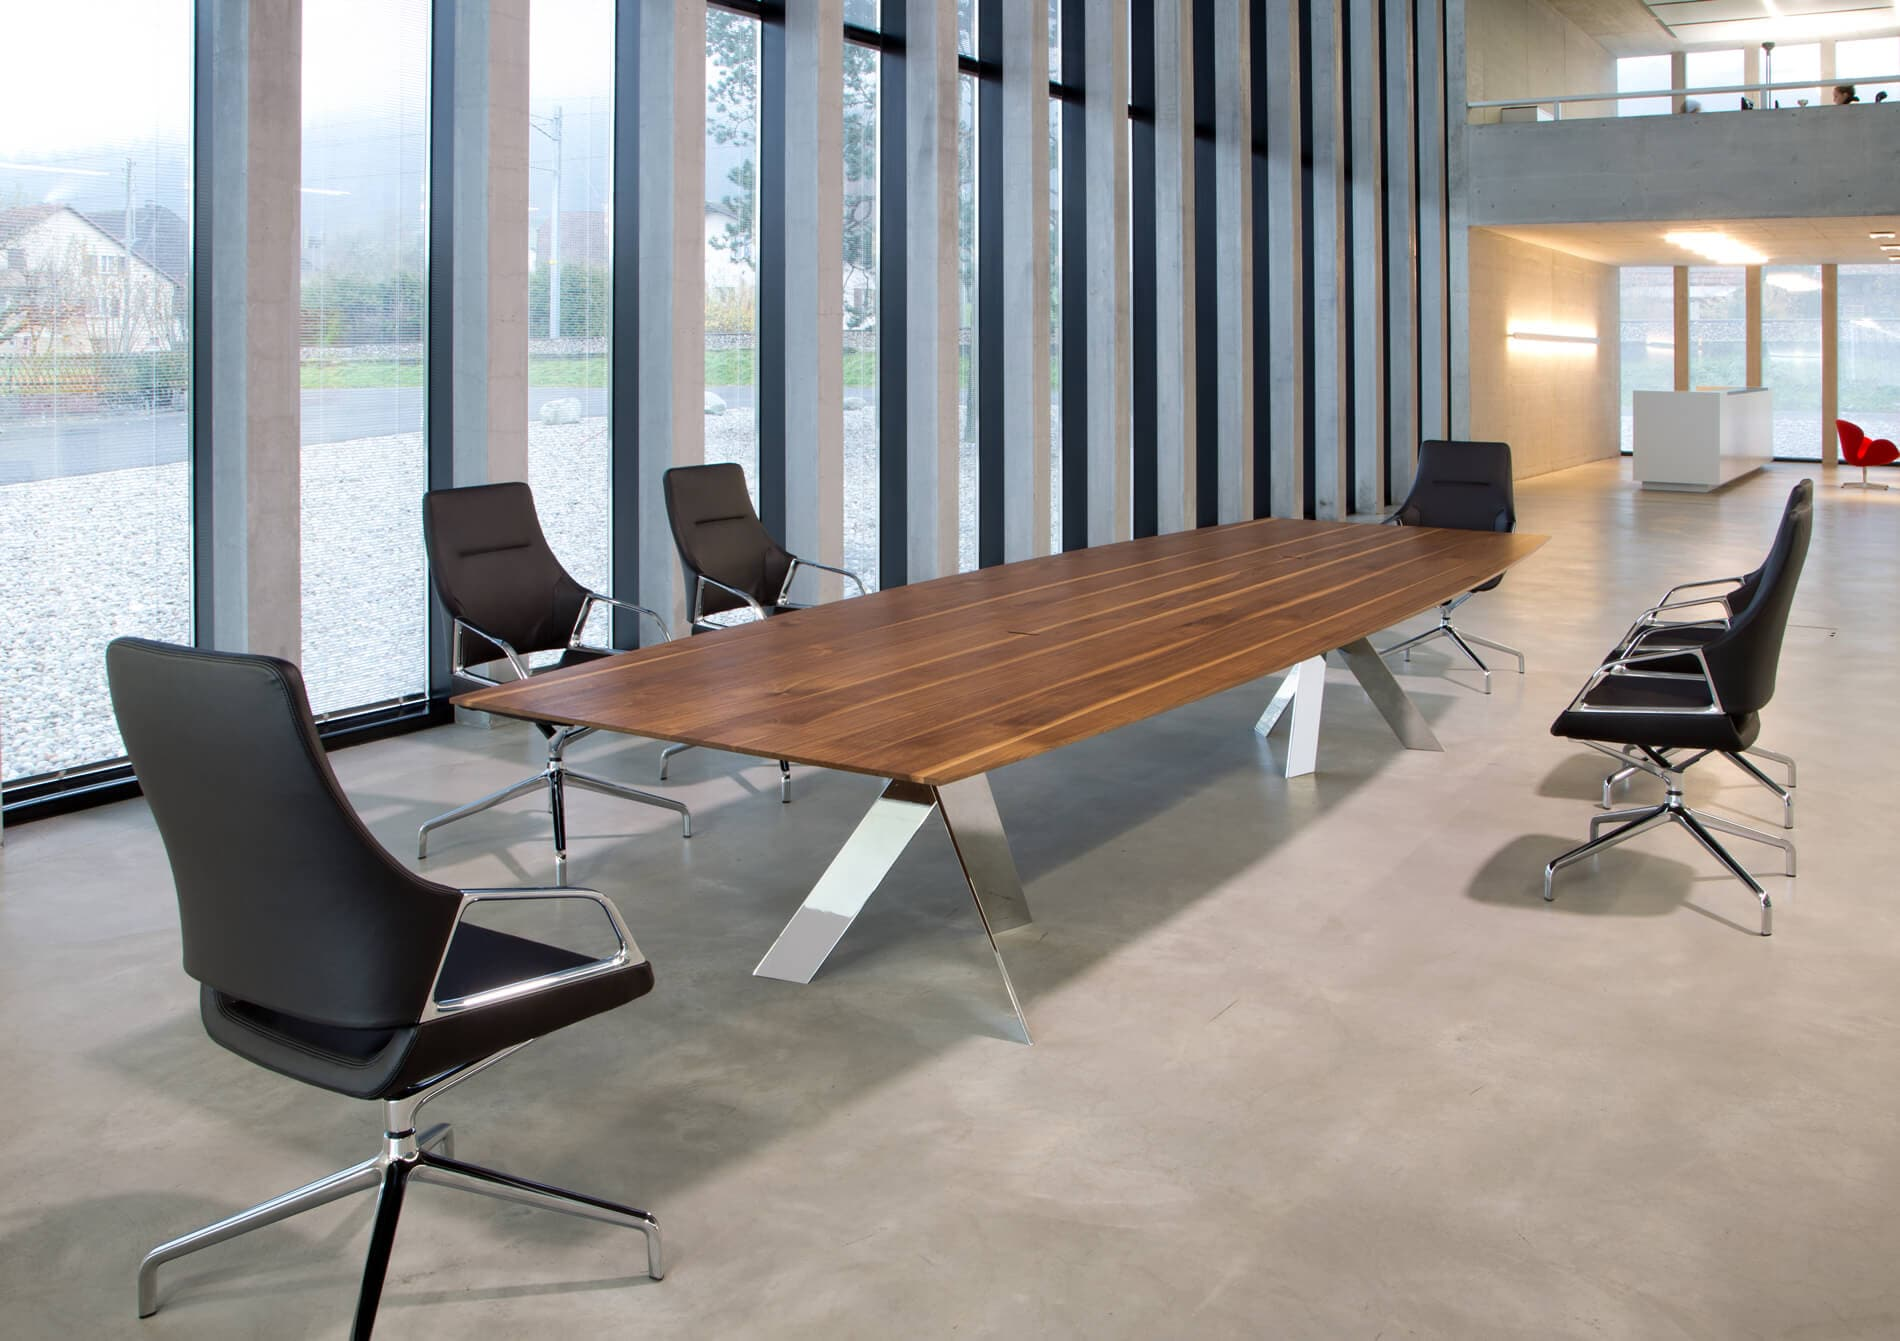 Conference Table Designs 12